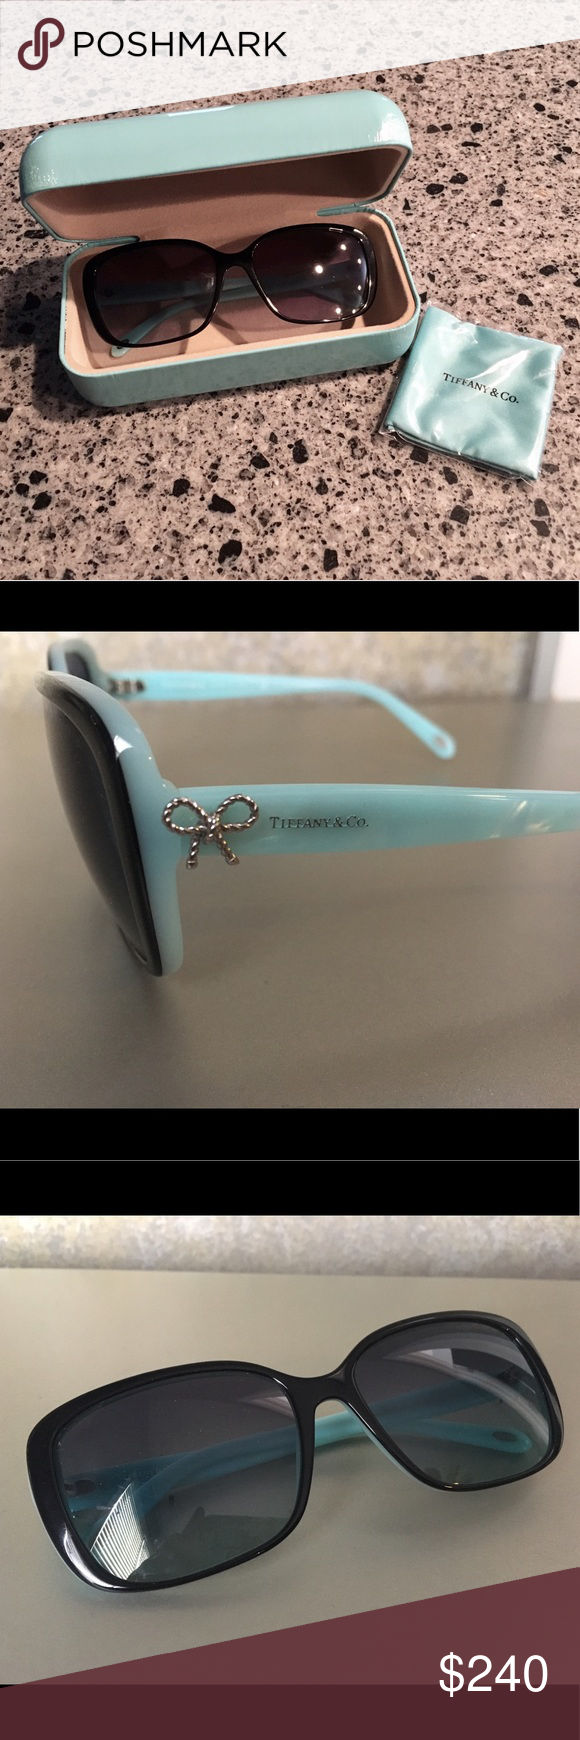 135a0ed14db Tiffany   Co. Twist Square Bow Sunglasses - TF4092 Show off your girly side  with these authentic designer sunglasses from Tiffany   Co.